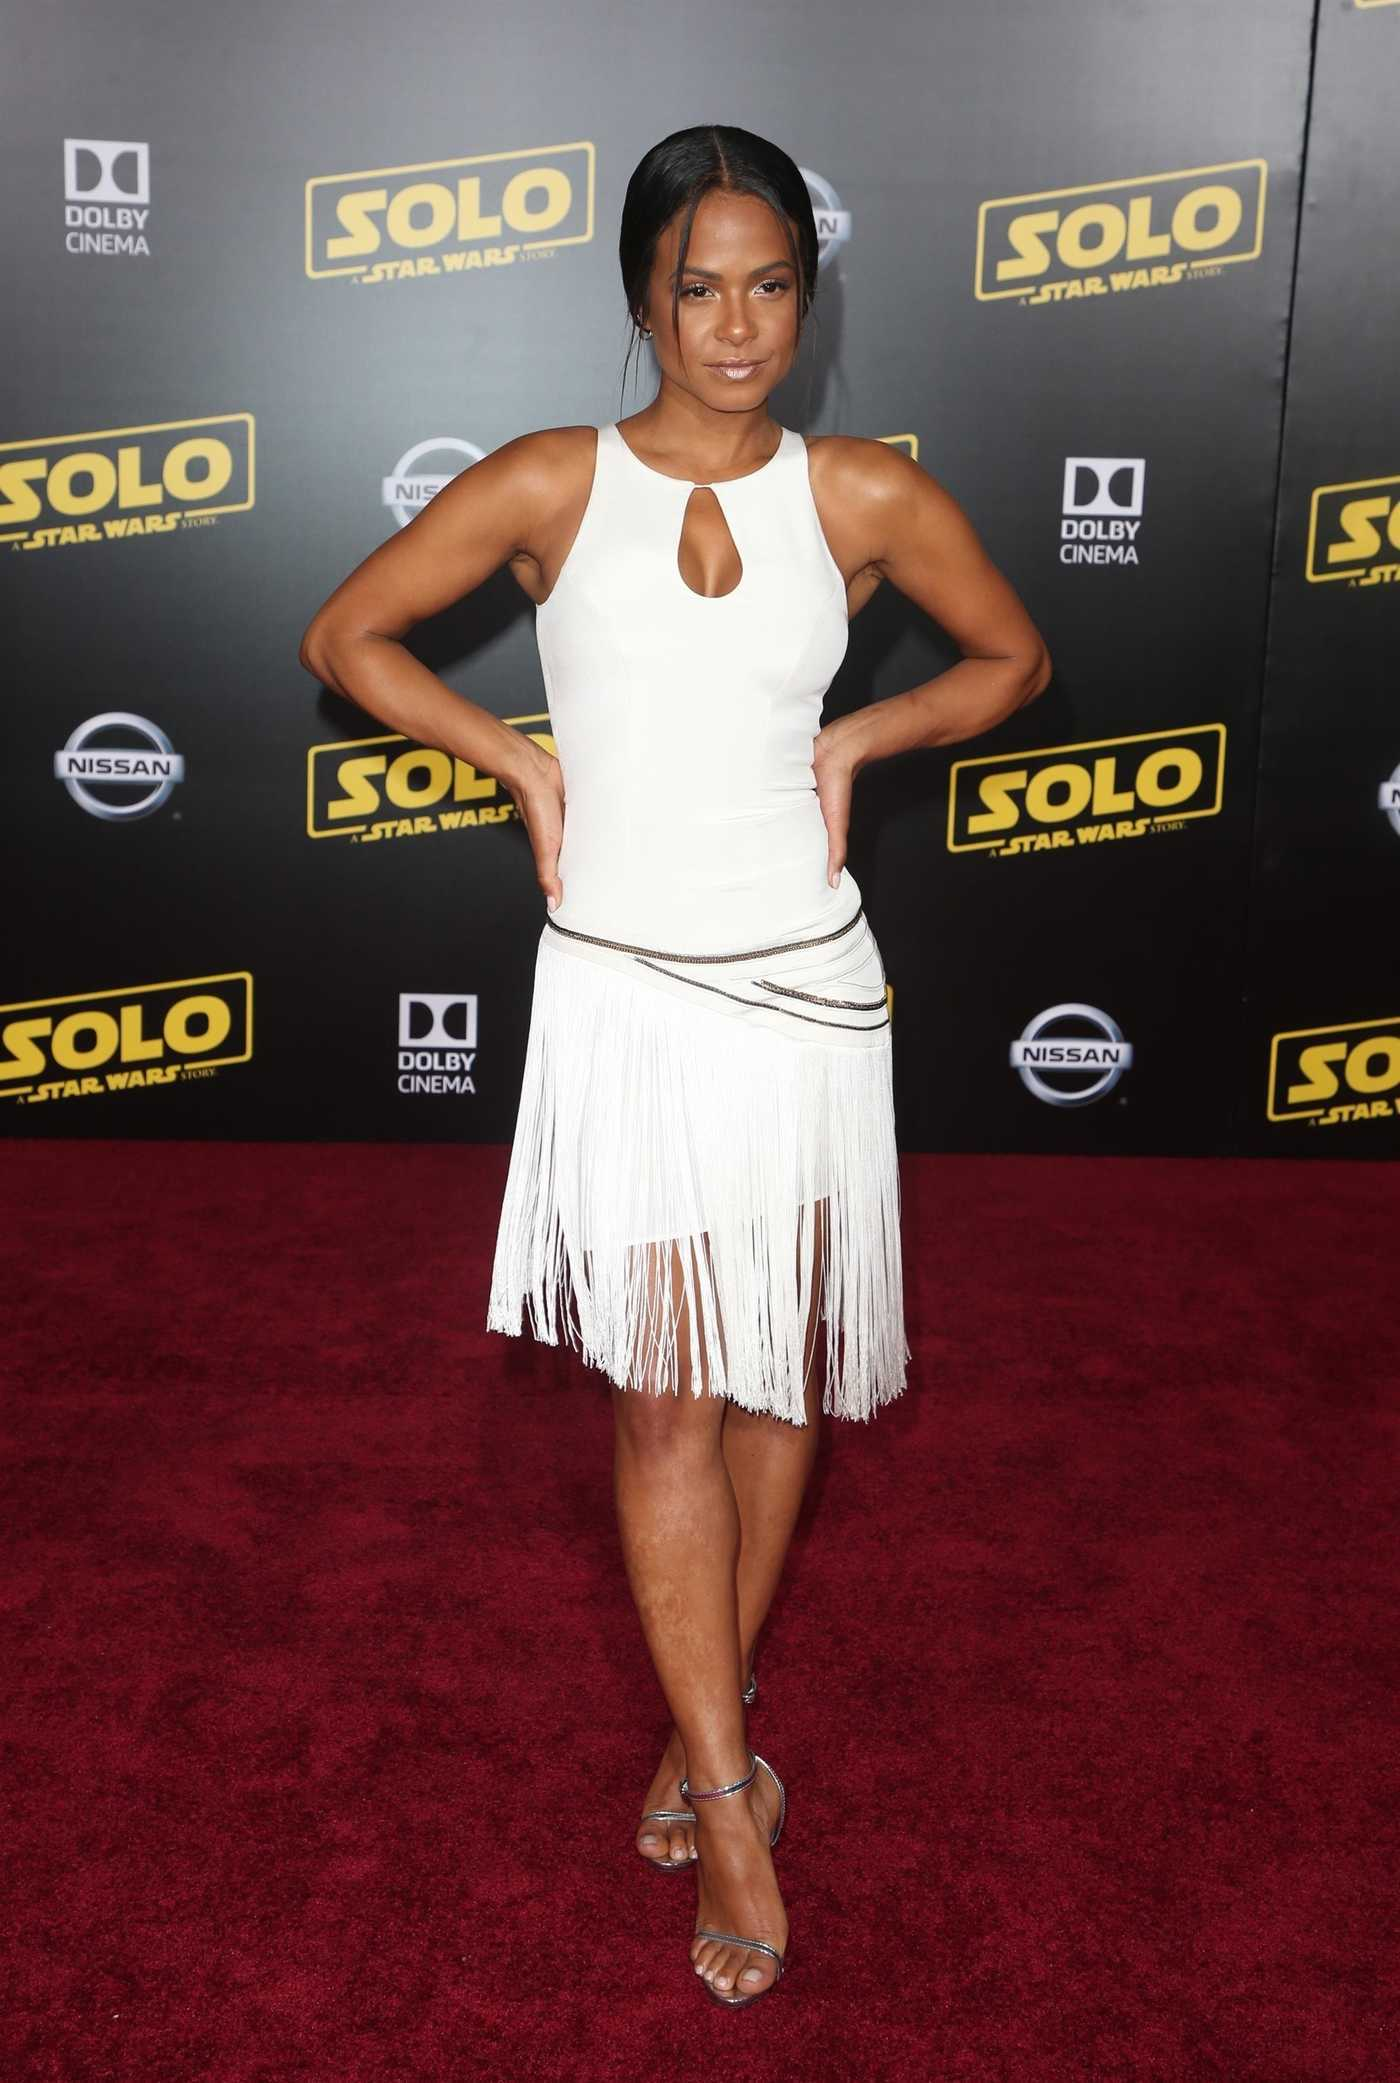 Christina Milian at the Solo: A Star Wars Story Premiere in Los Angeles 05/10/2018